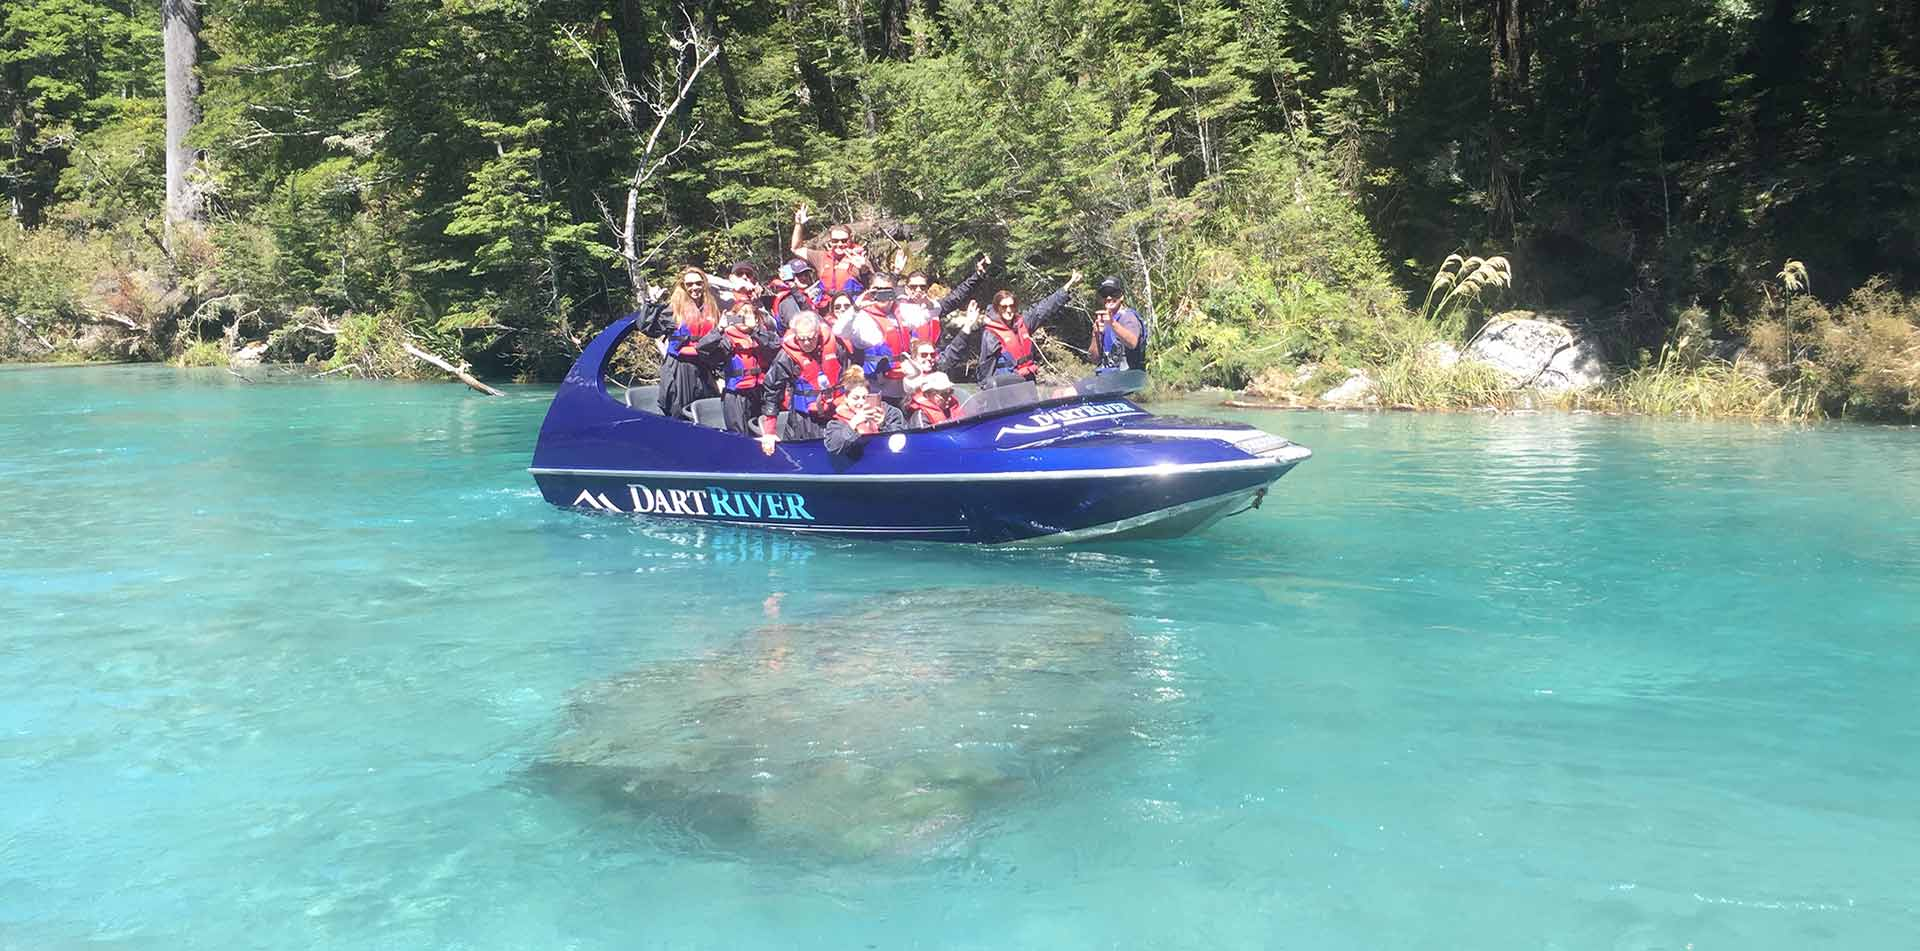 Oceania New Zealand South Island group of people in a jet boat on the Dart River - luxury vacation destinations